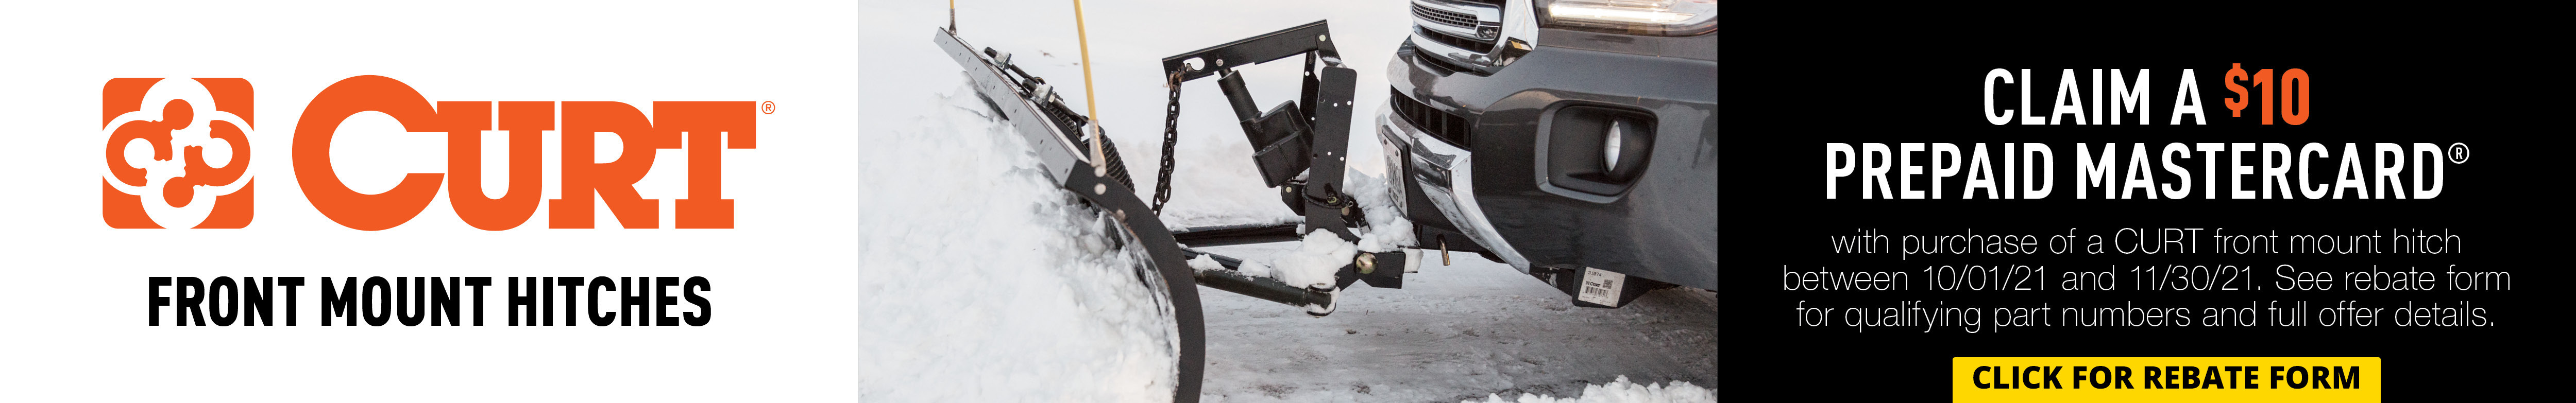 Curt - $10 Mail in Rebate - select Front Mount Hitches - Oct 1 thru Nov 30